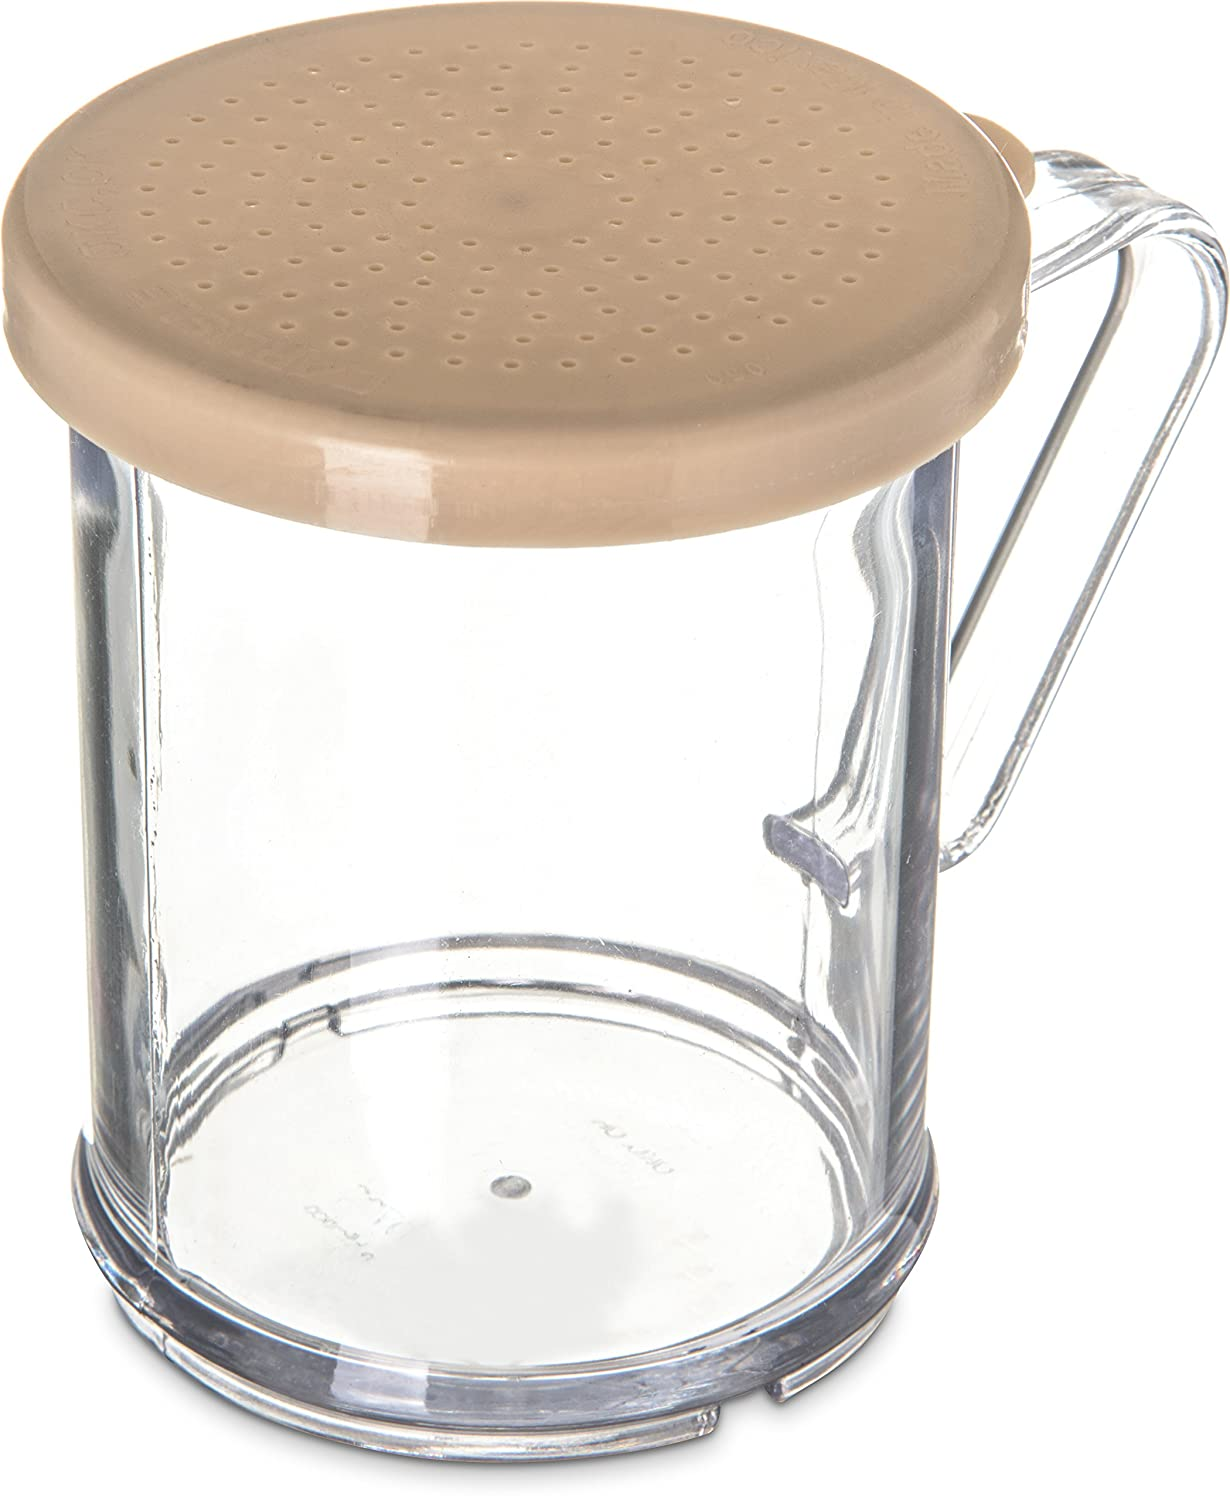 Carlisle 426004 Polycarbonate Cheese Shaker//Dredge with Lid Yellow 1 Cup Capacity Pack of 12